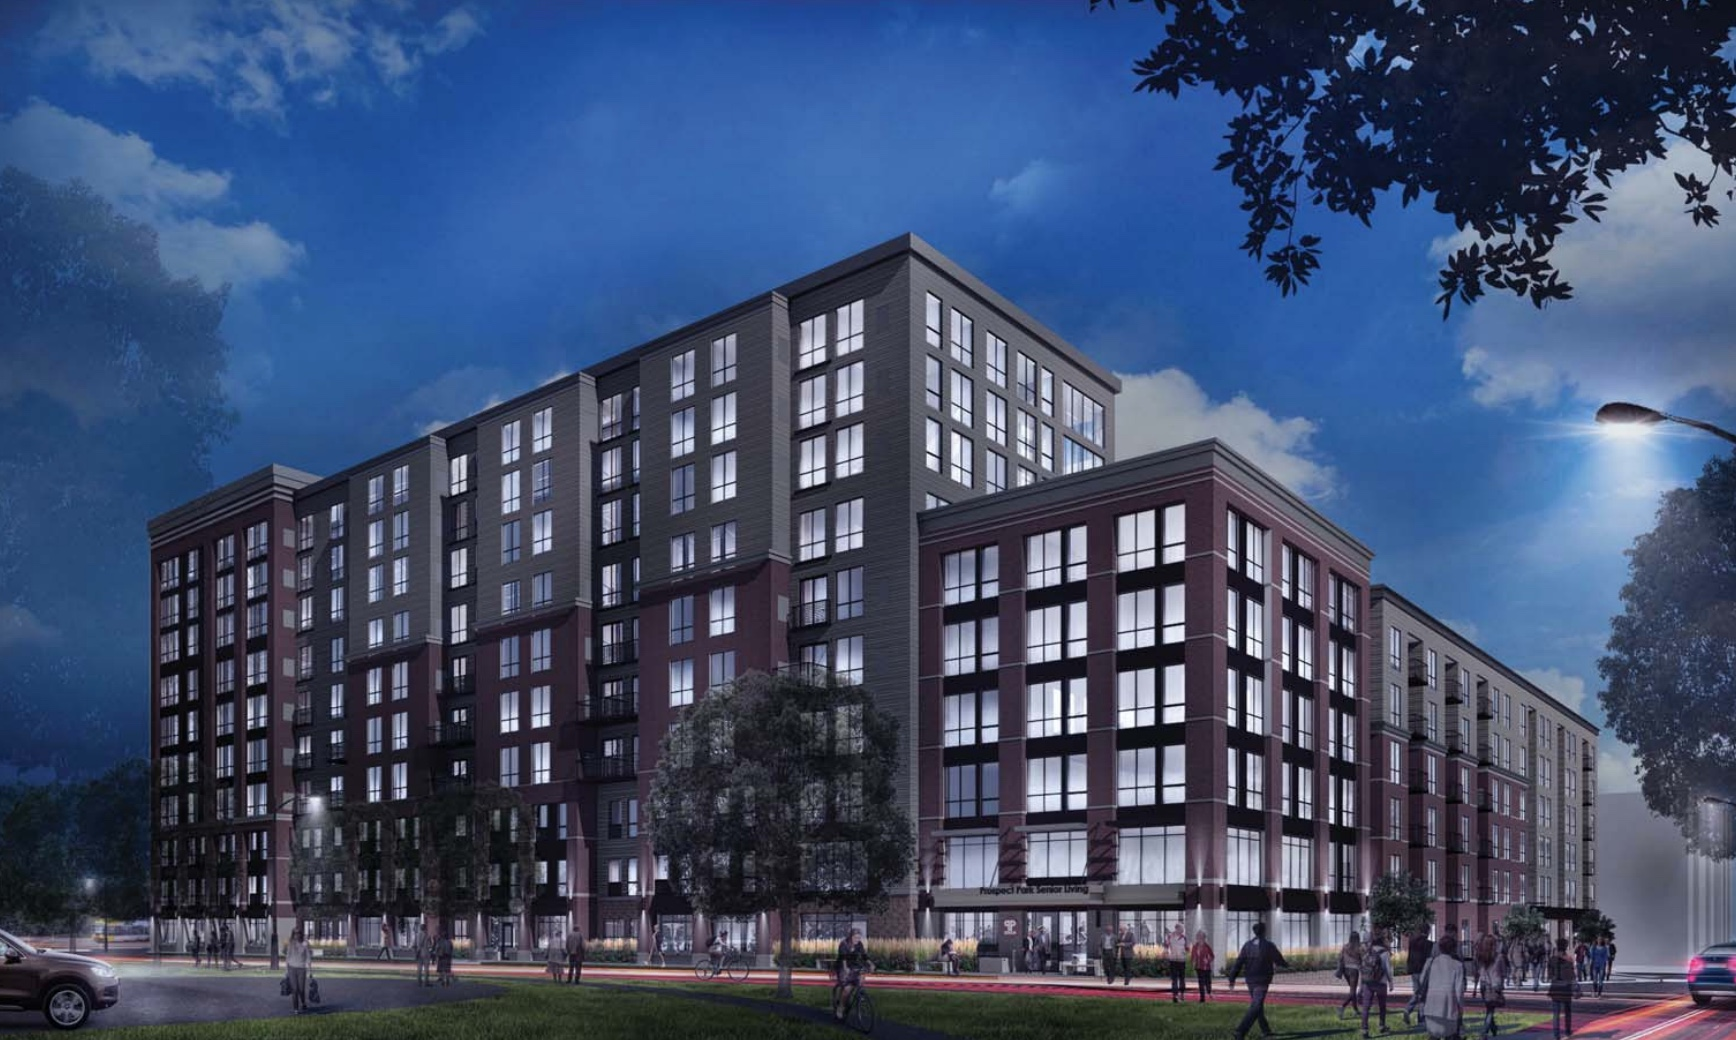 10 STORY SENIOR LIVING PROJECT PLANNED FOR PROSPECT PARK